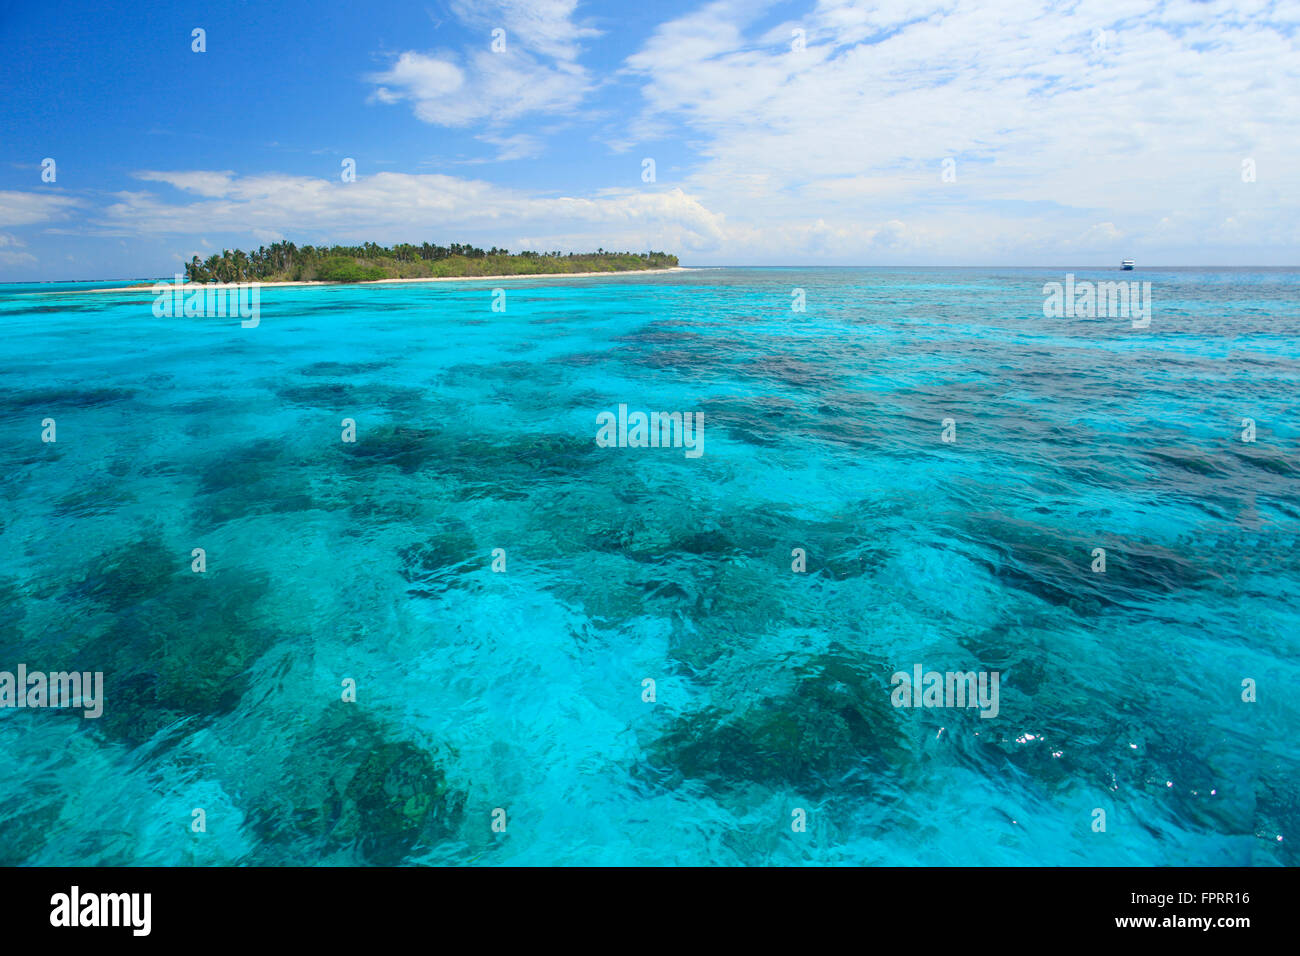 Central America, Belize, Lighthouse atoll, a coral caye in the Caribbean Sea, island, coral reef - Stock Image